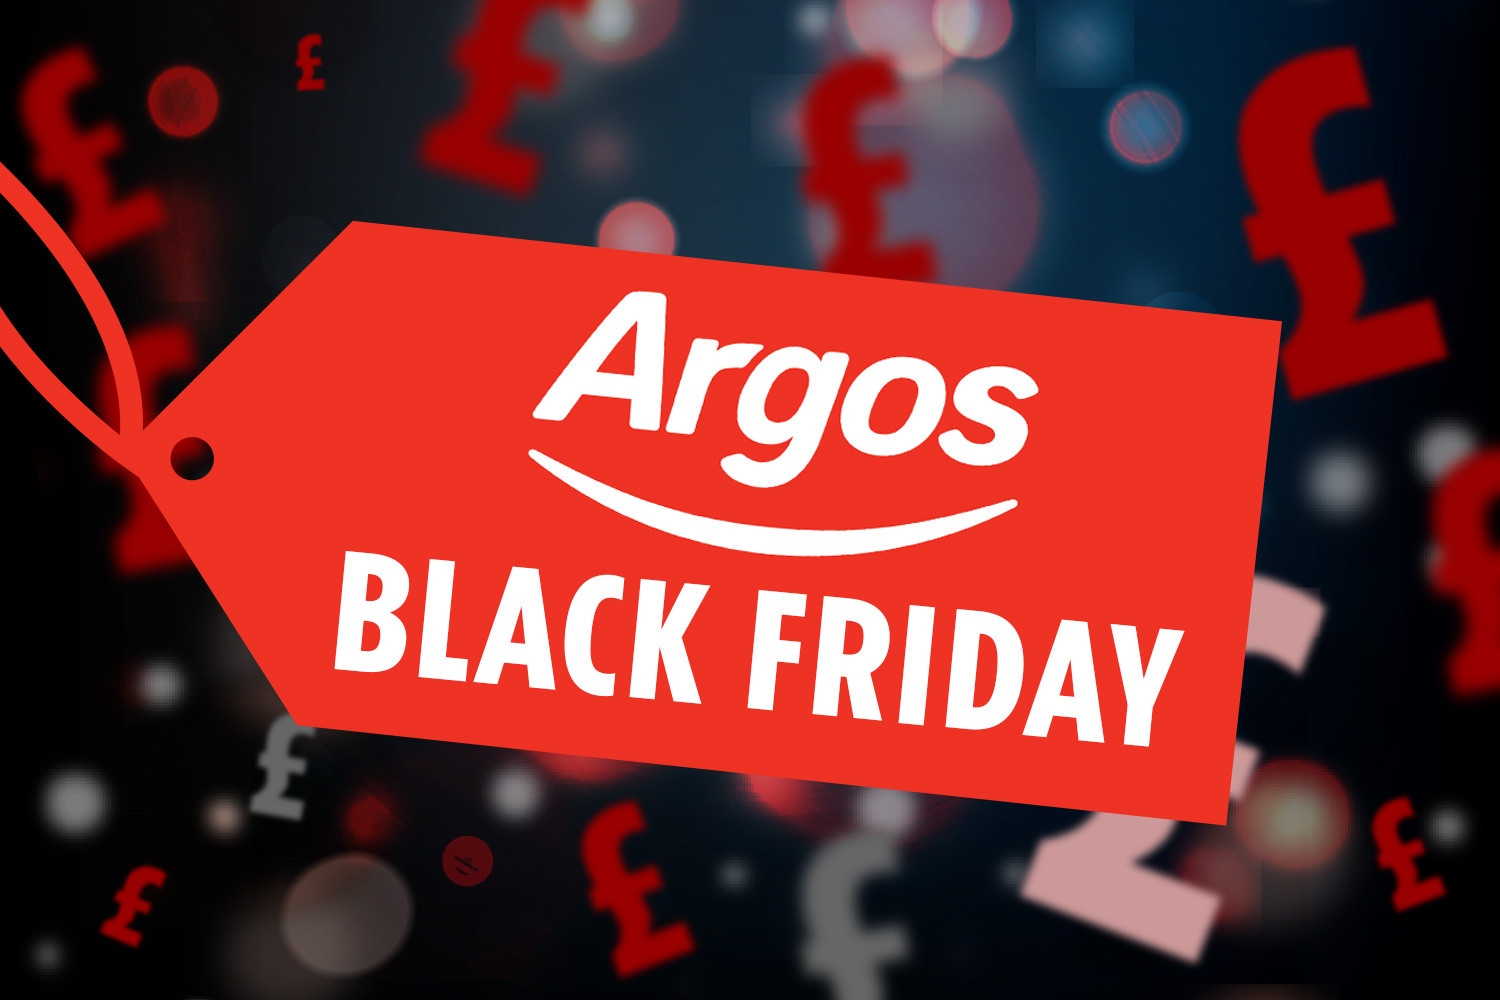 Upcoming Argos Black Friday Deals on Tech Products